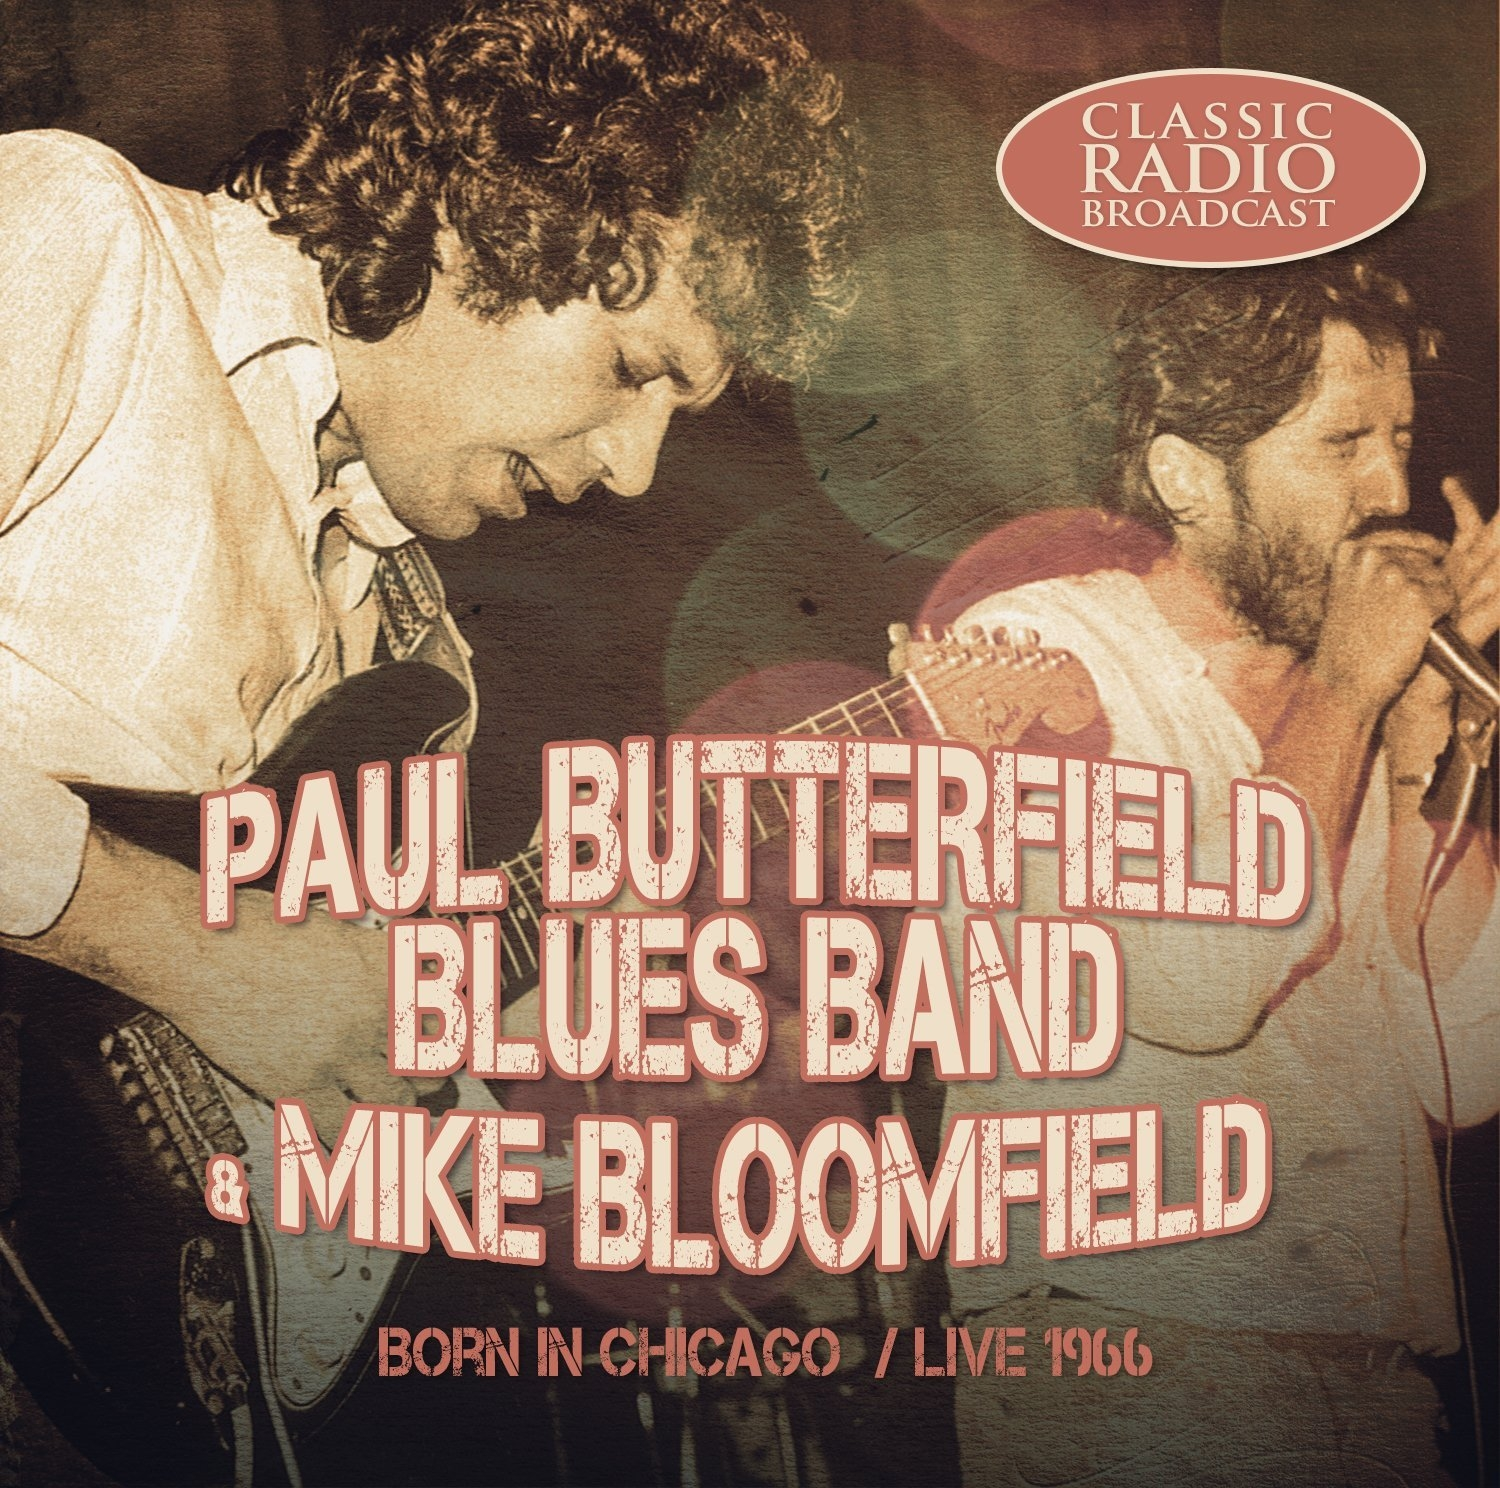 Paul Butterfield Blues Band & Mike Bloomfield - Born In Chicago: Live 1966